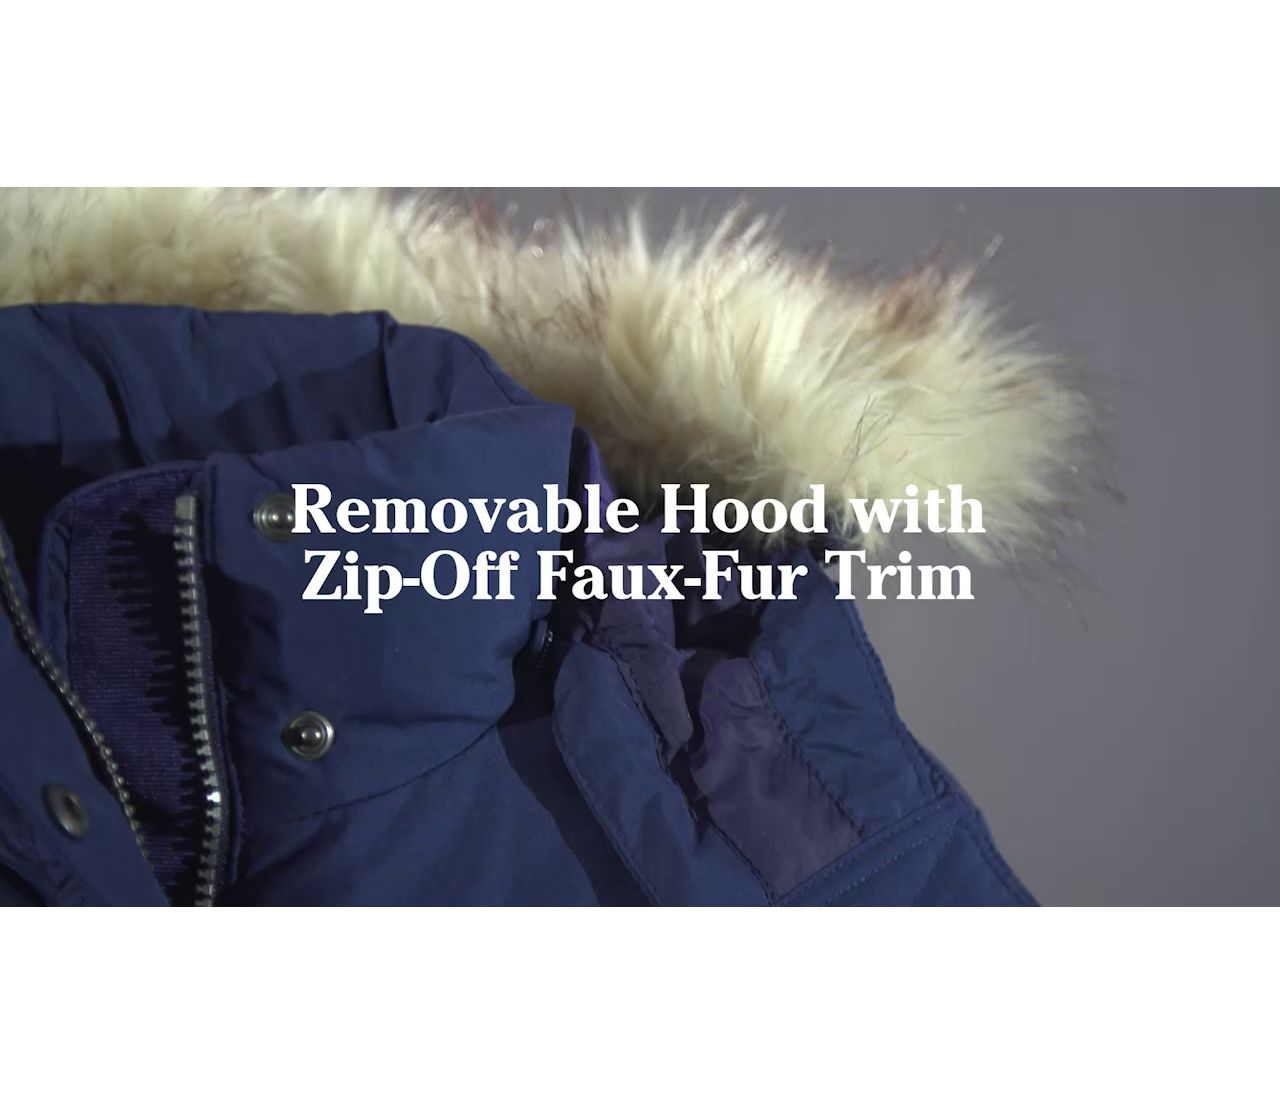 Video: Ultrawarm Coat